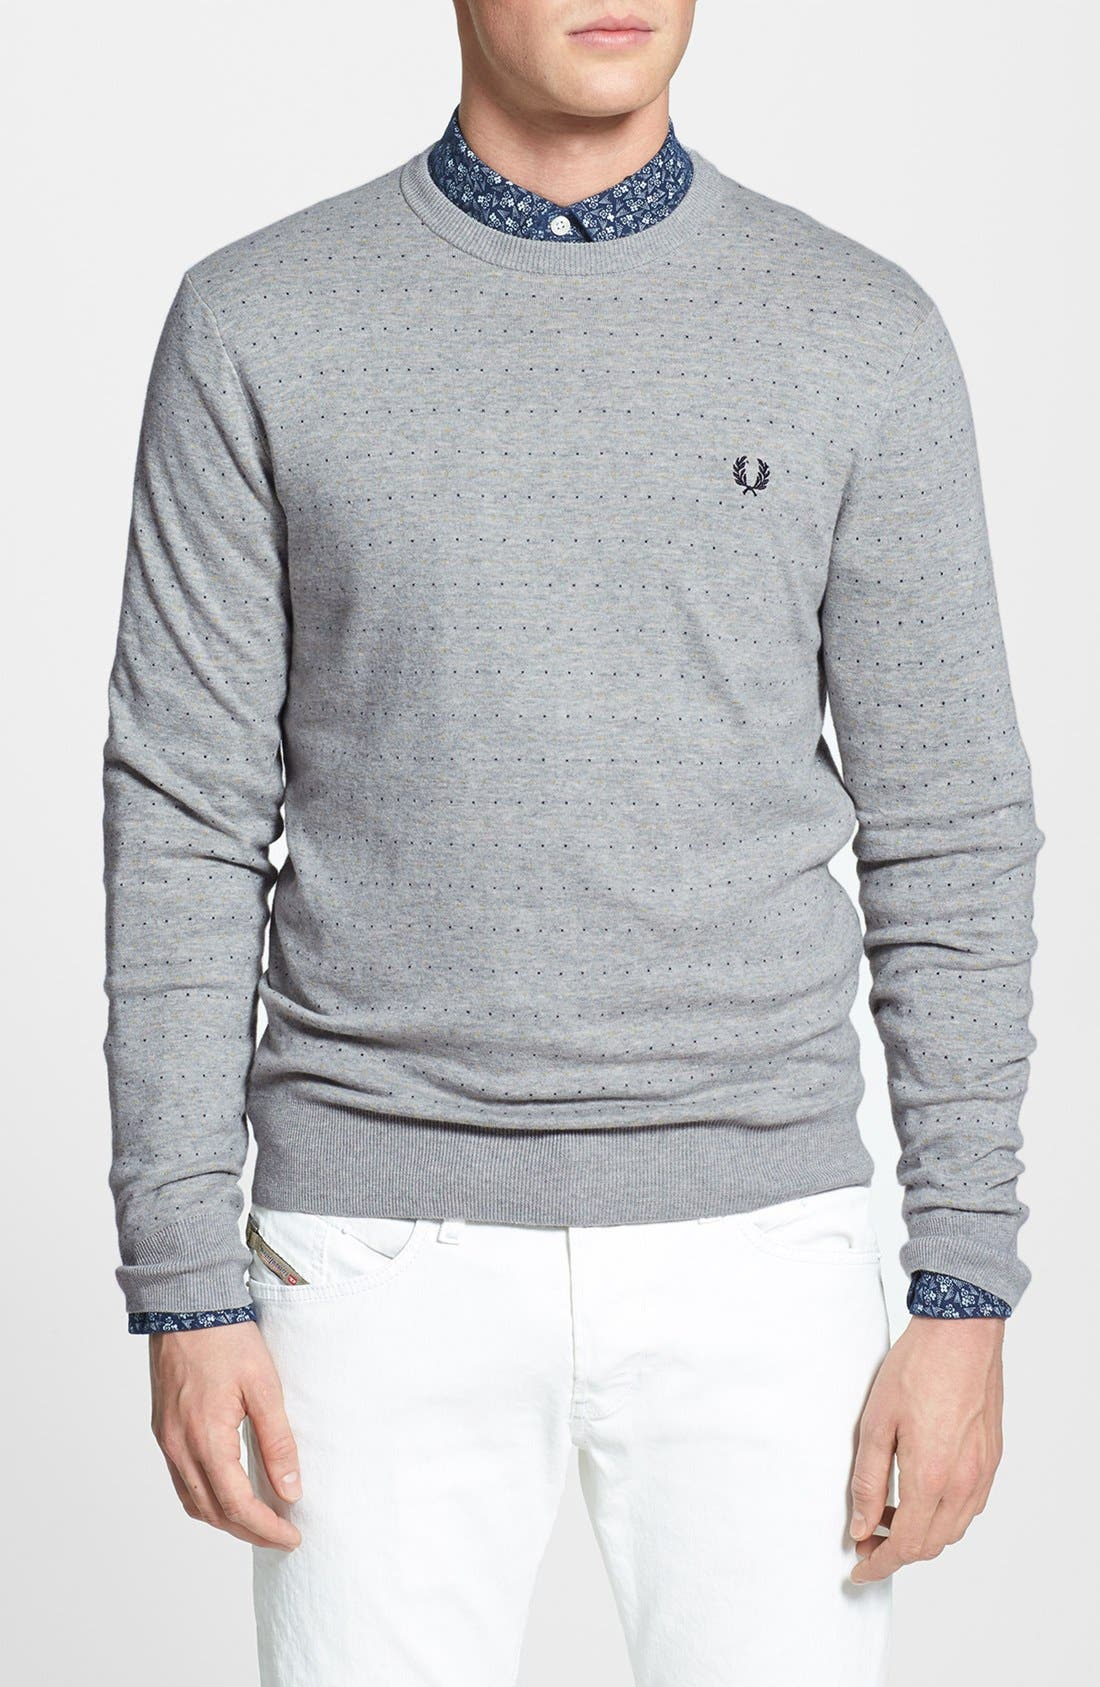 Main Image - Fred Perry 'Dot' Crewneck Sweater